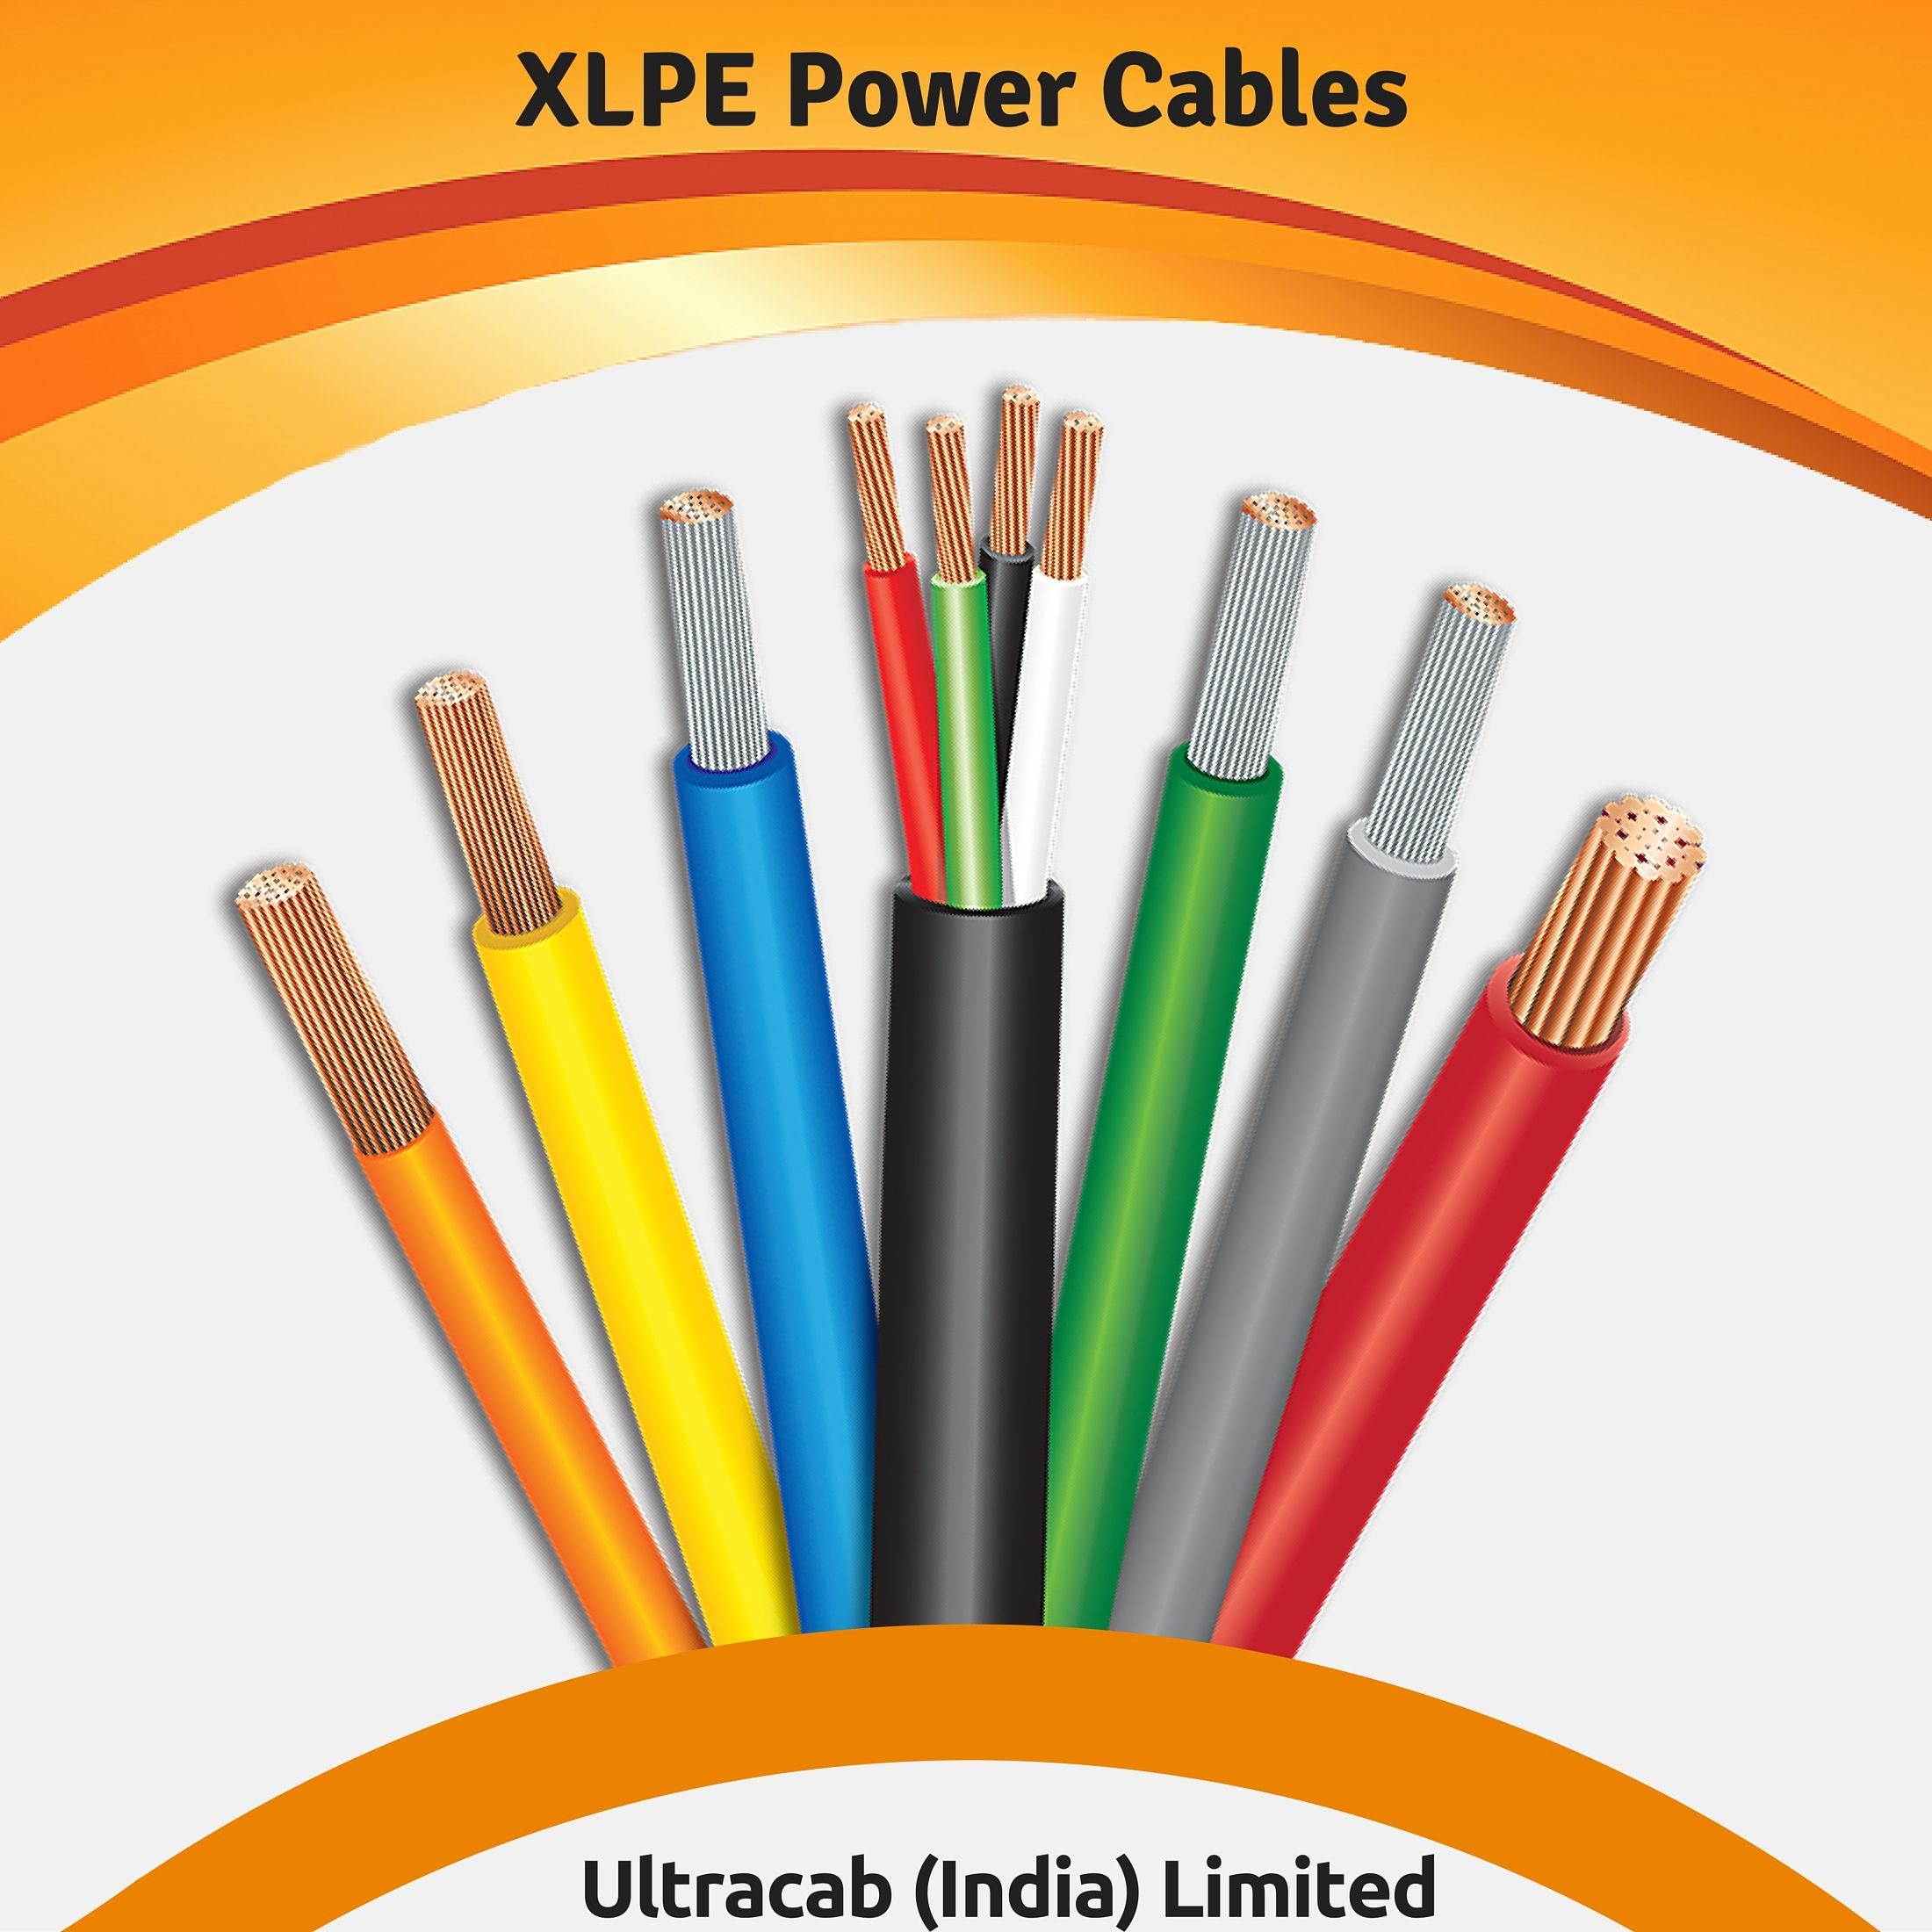 Ultracab Is India Based Heavy Duty Powercablesmanufacturers And Exporters We Are Manufacturing Xlpe Power Cables And Cables Power Cosmetics Advertising